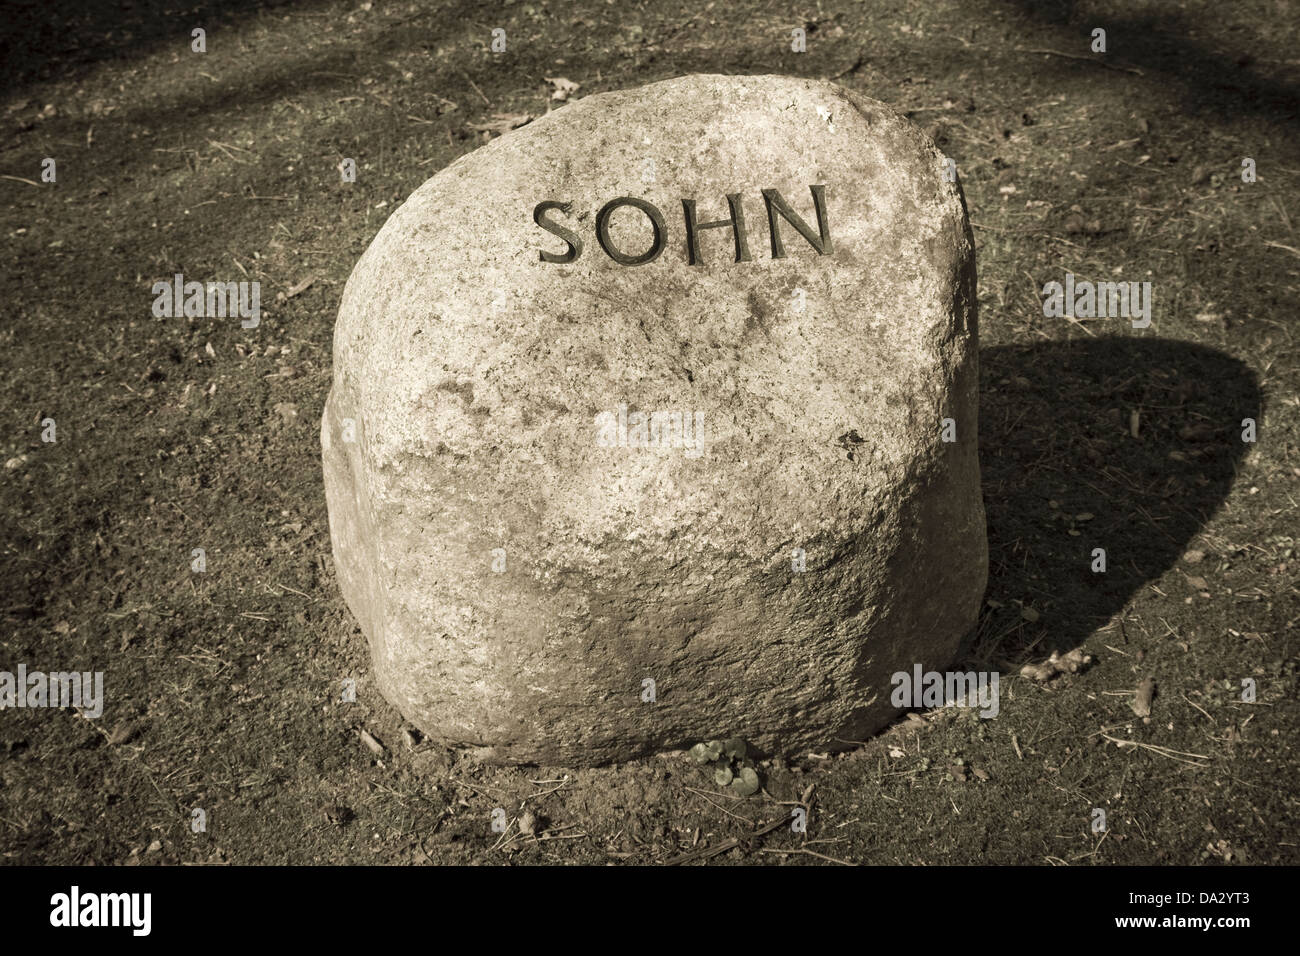 grave inscription son on a german cemetery - Stock Image